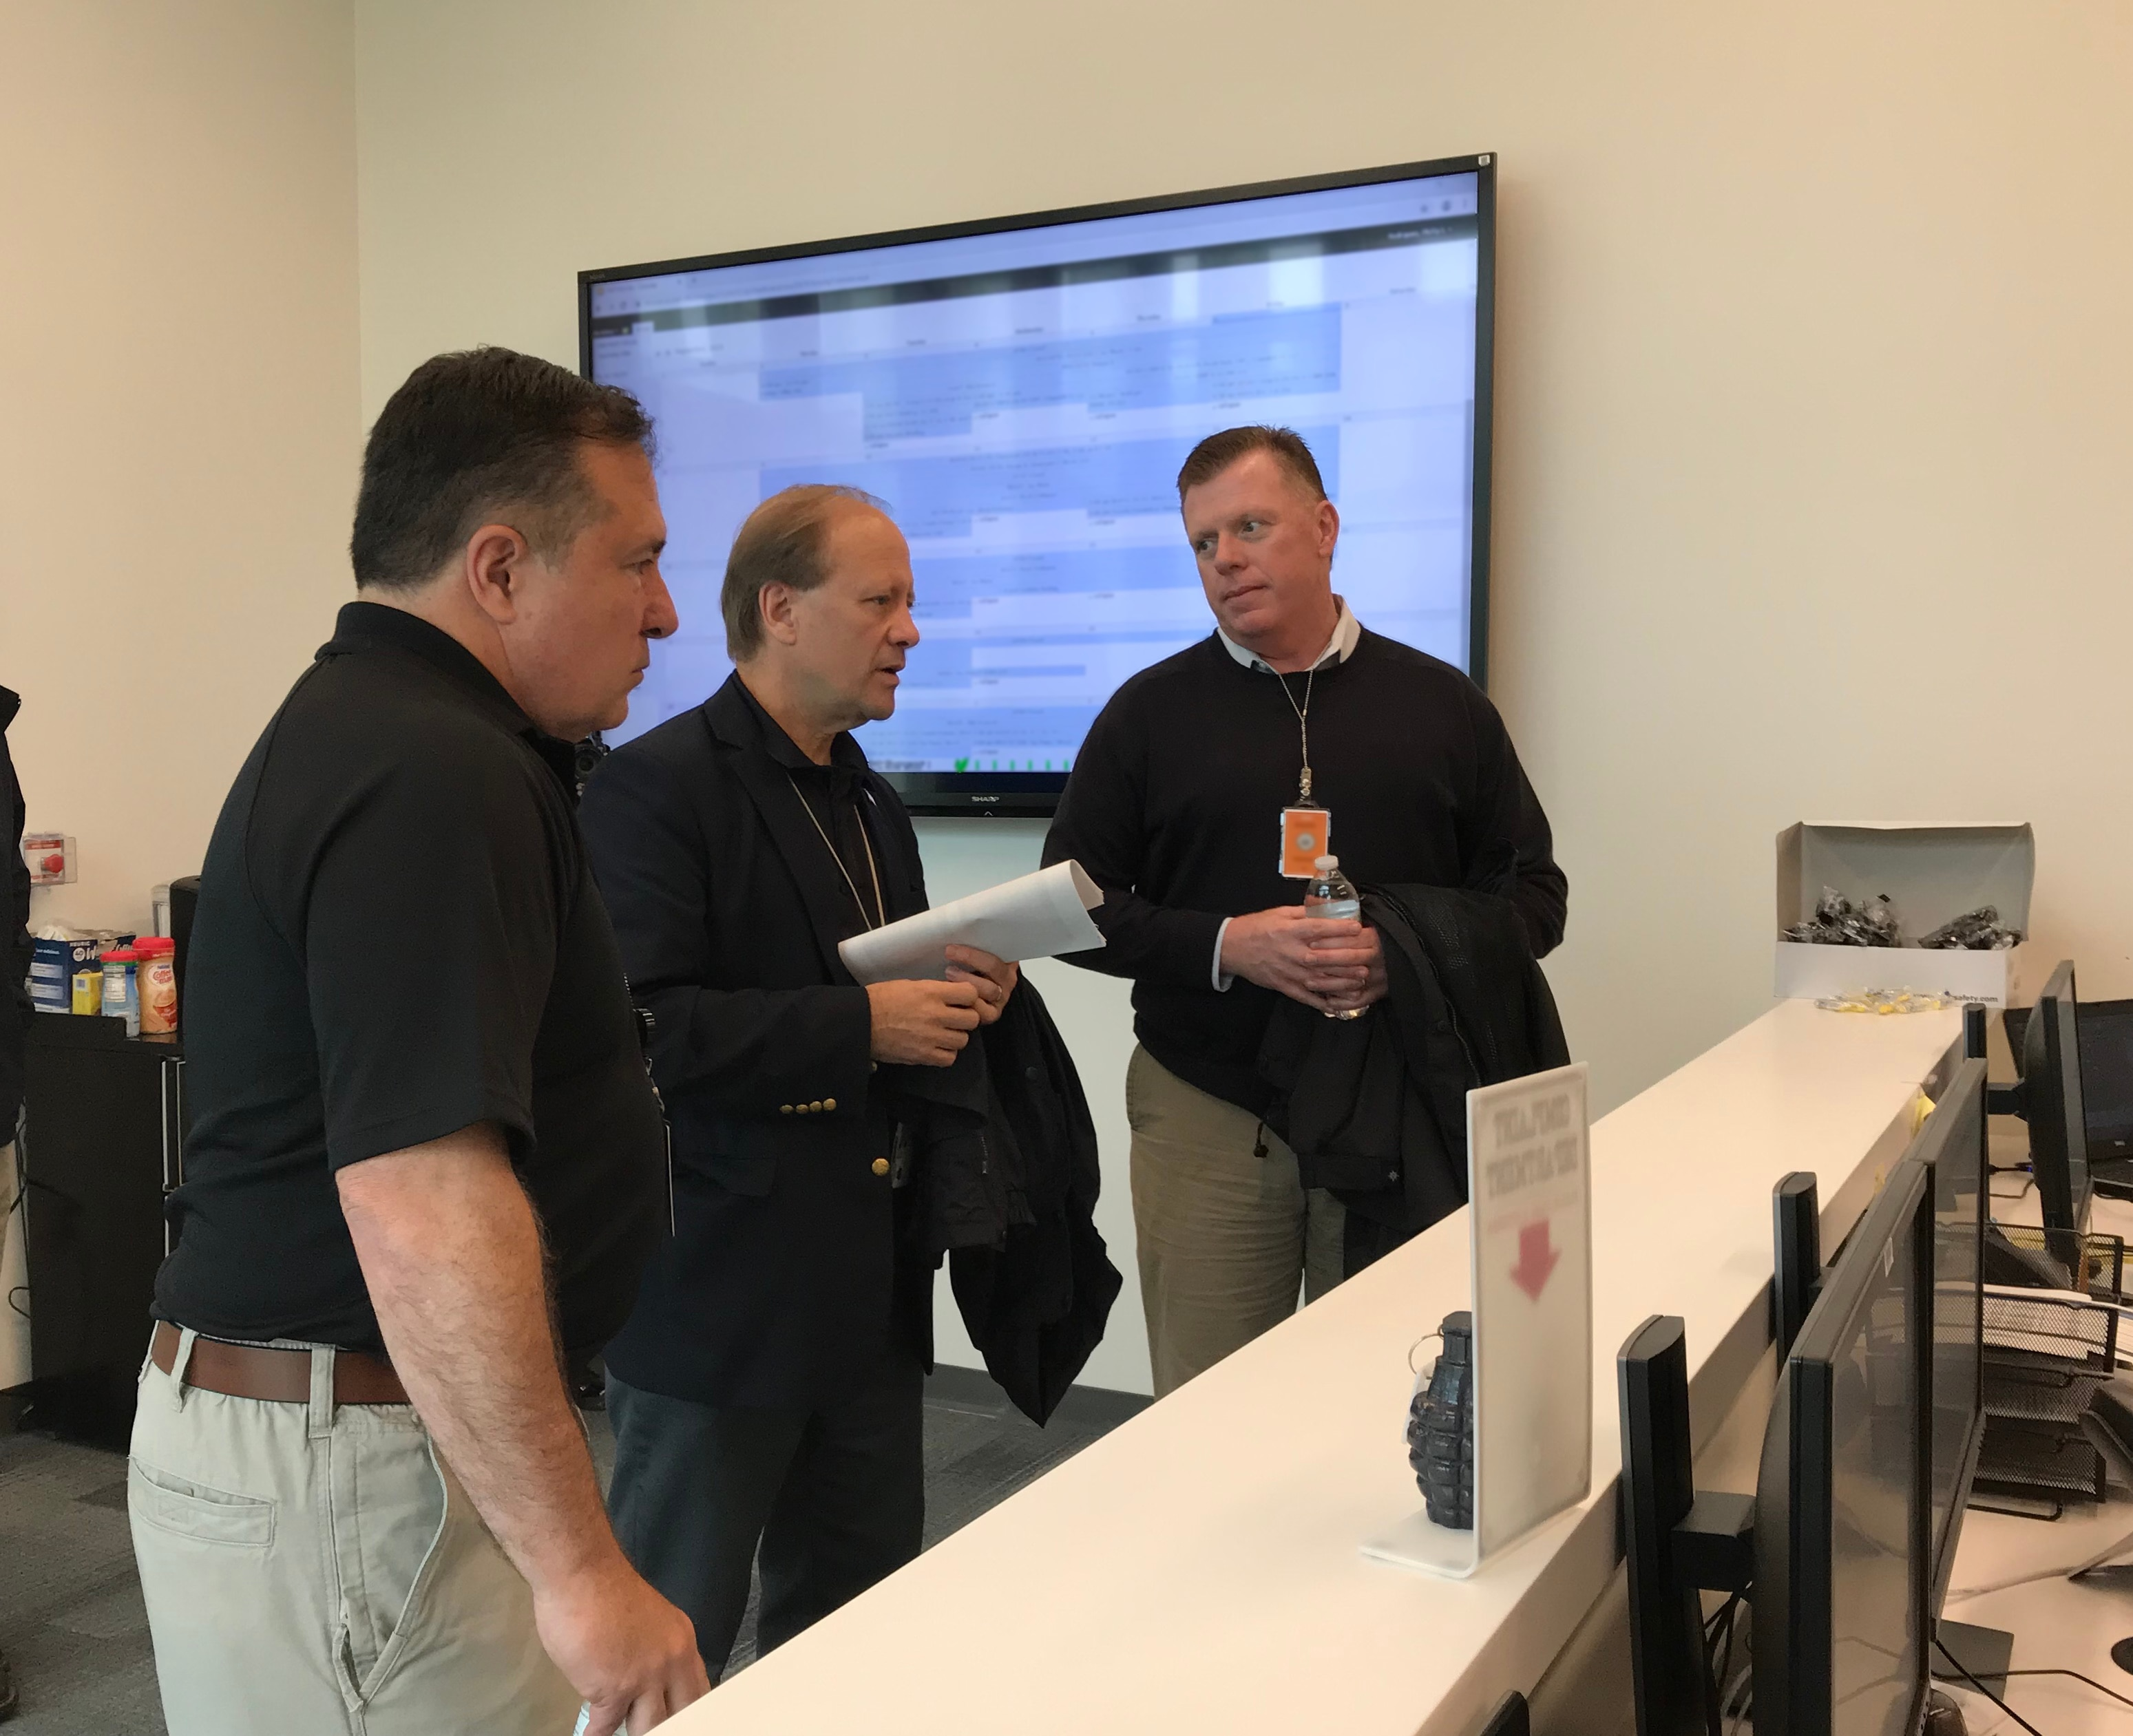 (Left to right) Assistant Secretary for Diplomatic Security Michael Evanoff, FASTC Director Robert Weitzel and Director of the U.S. Secret Service James Murray begin a tour of FASTC in the facility's Tactical Operations Center.